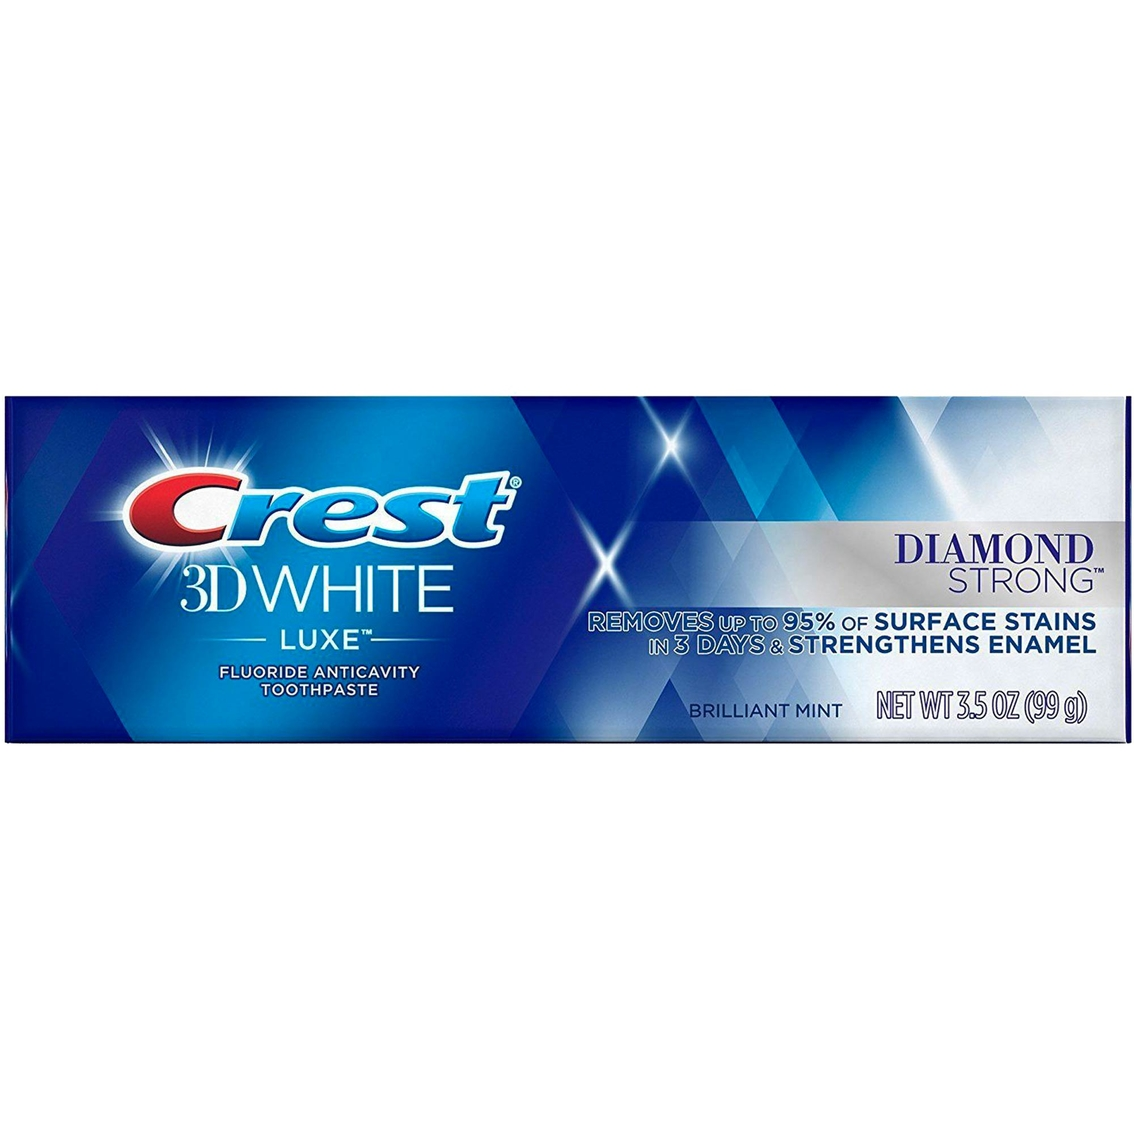 Crest 3d White Luxe Diamond Strong Teeth Whitening Toothpaste 3 5 Oz Tooth Paste Beauty Health Shop The Exchange